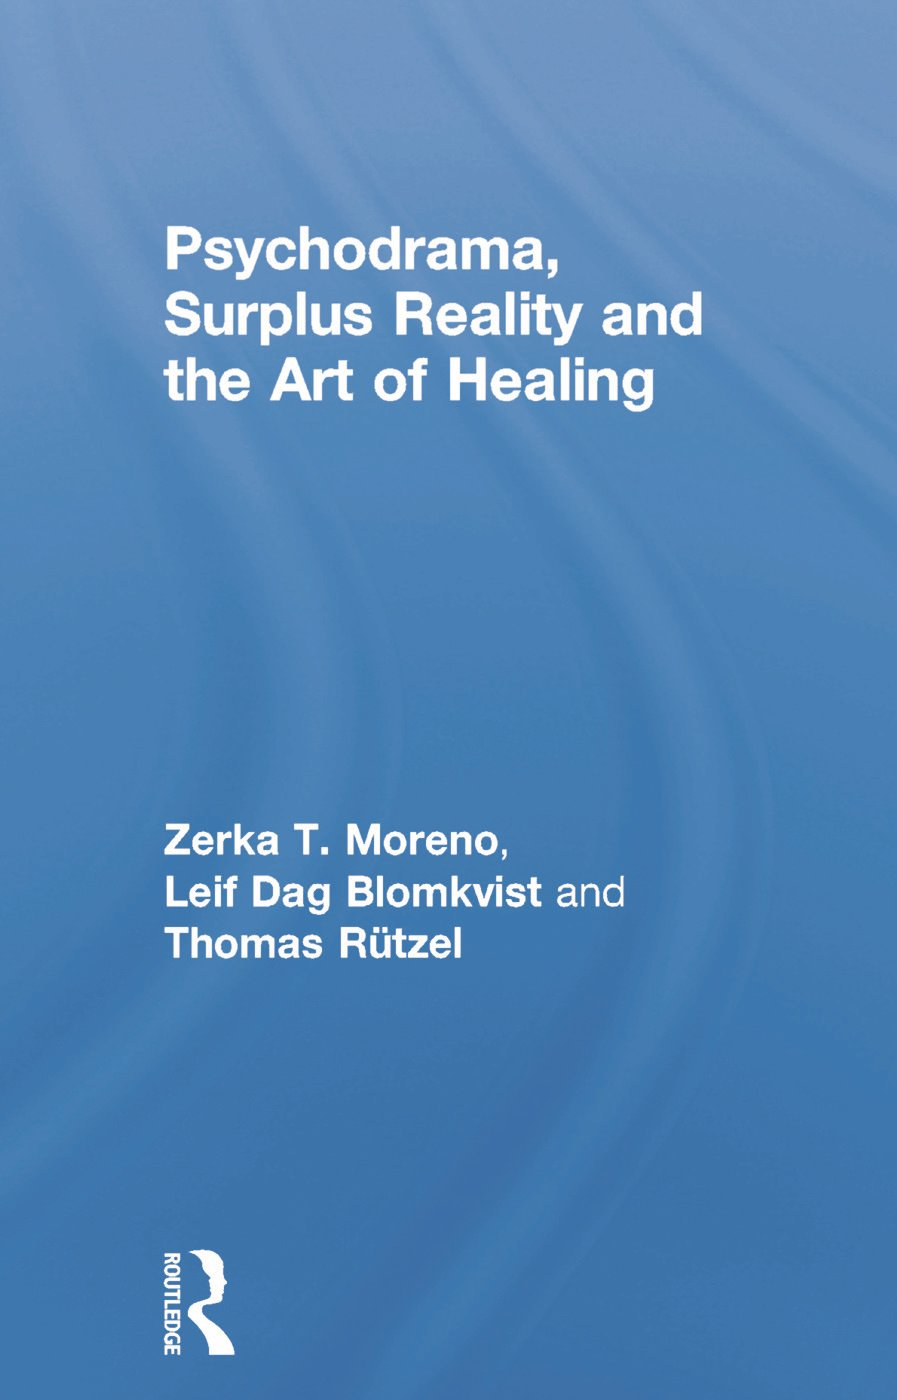 Psychodrama, Surplus Reality and the Art of Healing: 1st Edition (Paperback) book cover